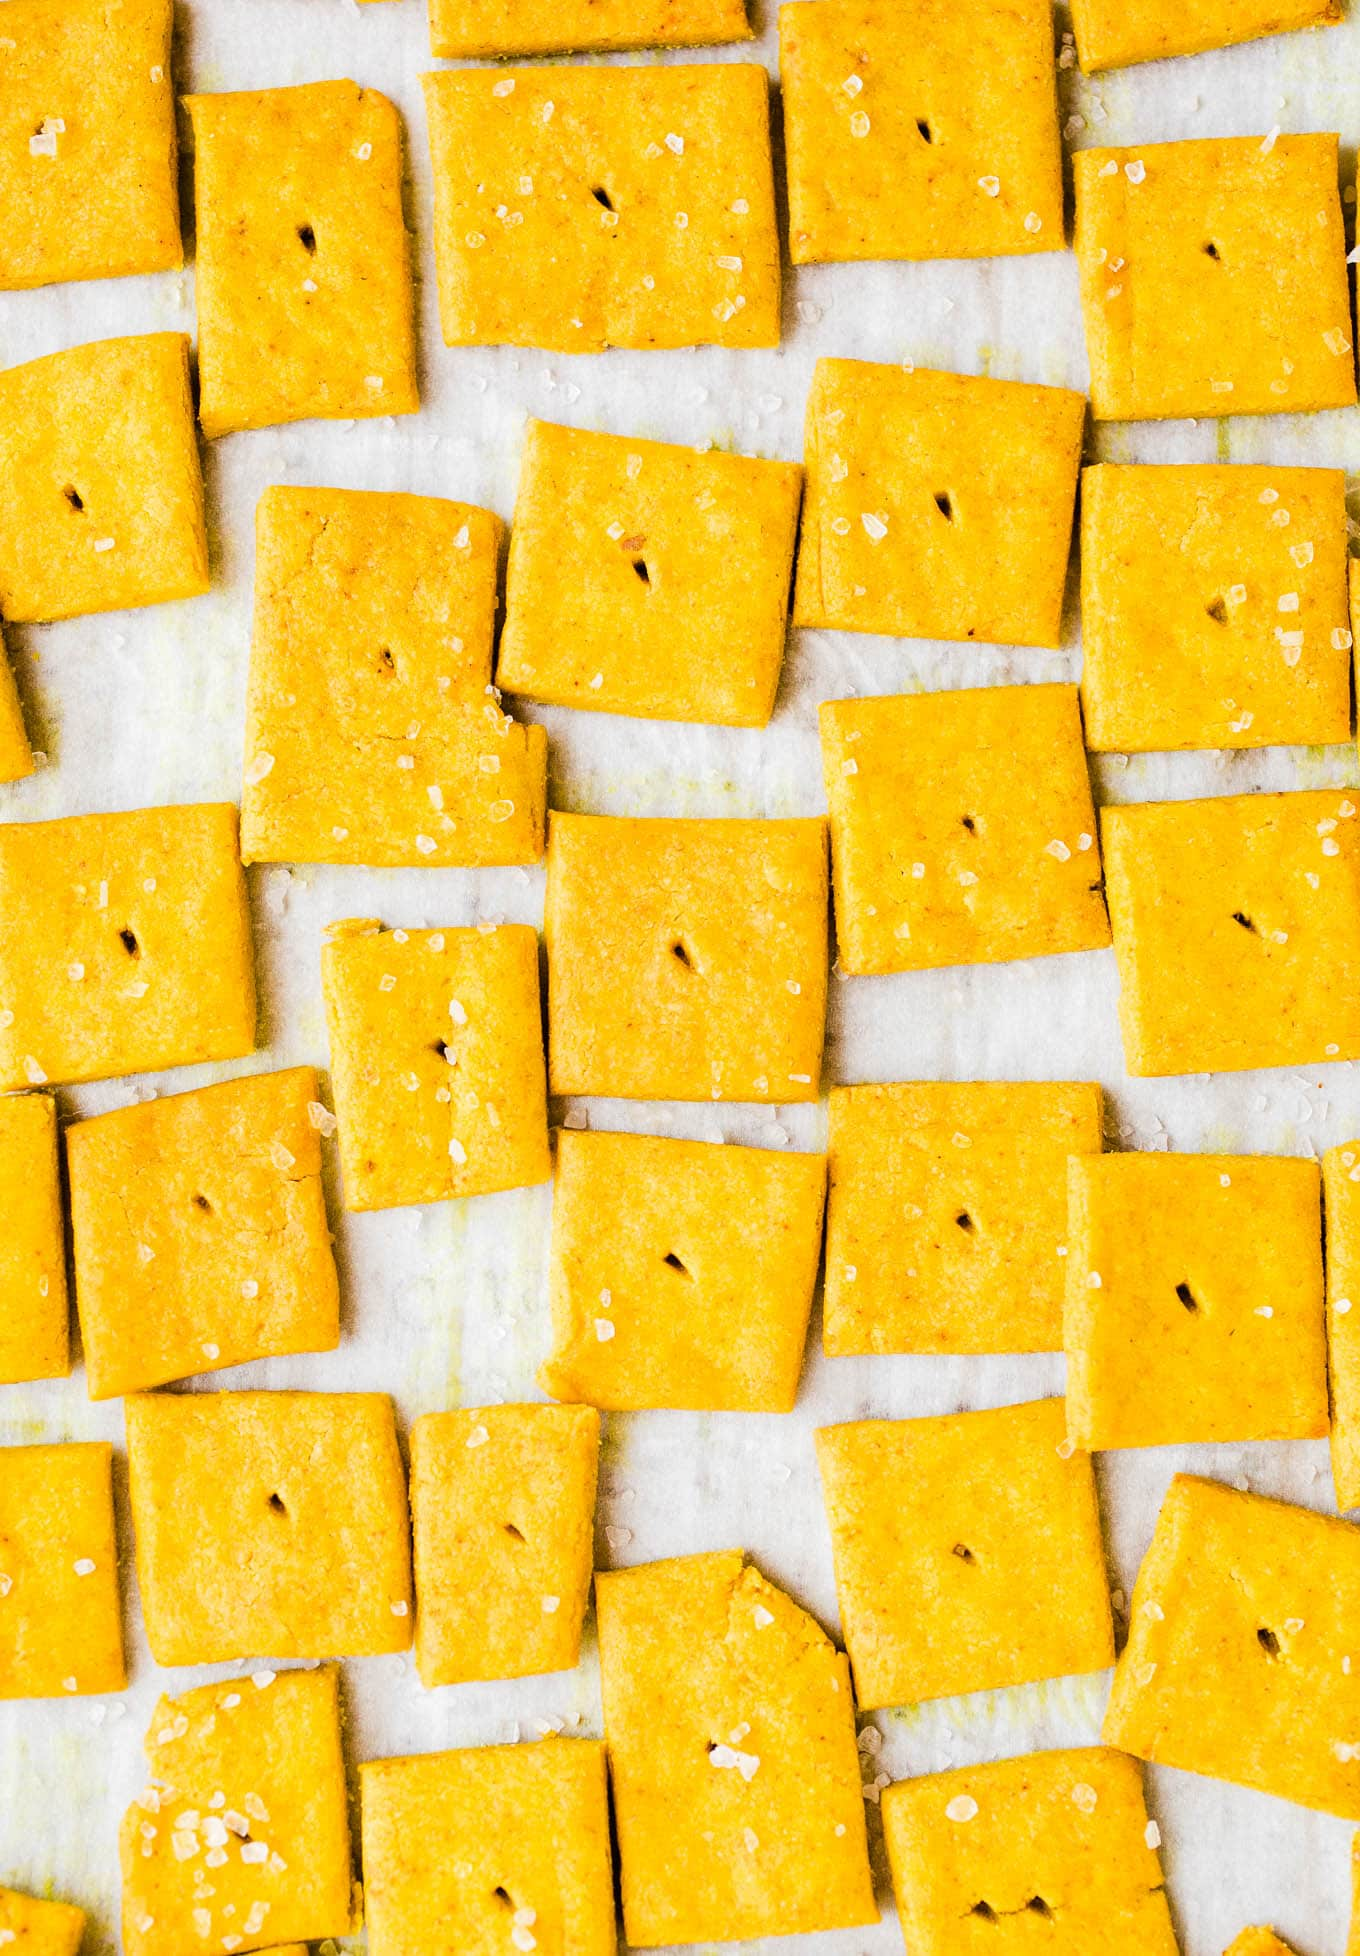 cheese crackers with sea salt on top